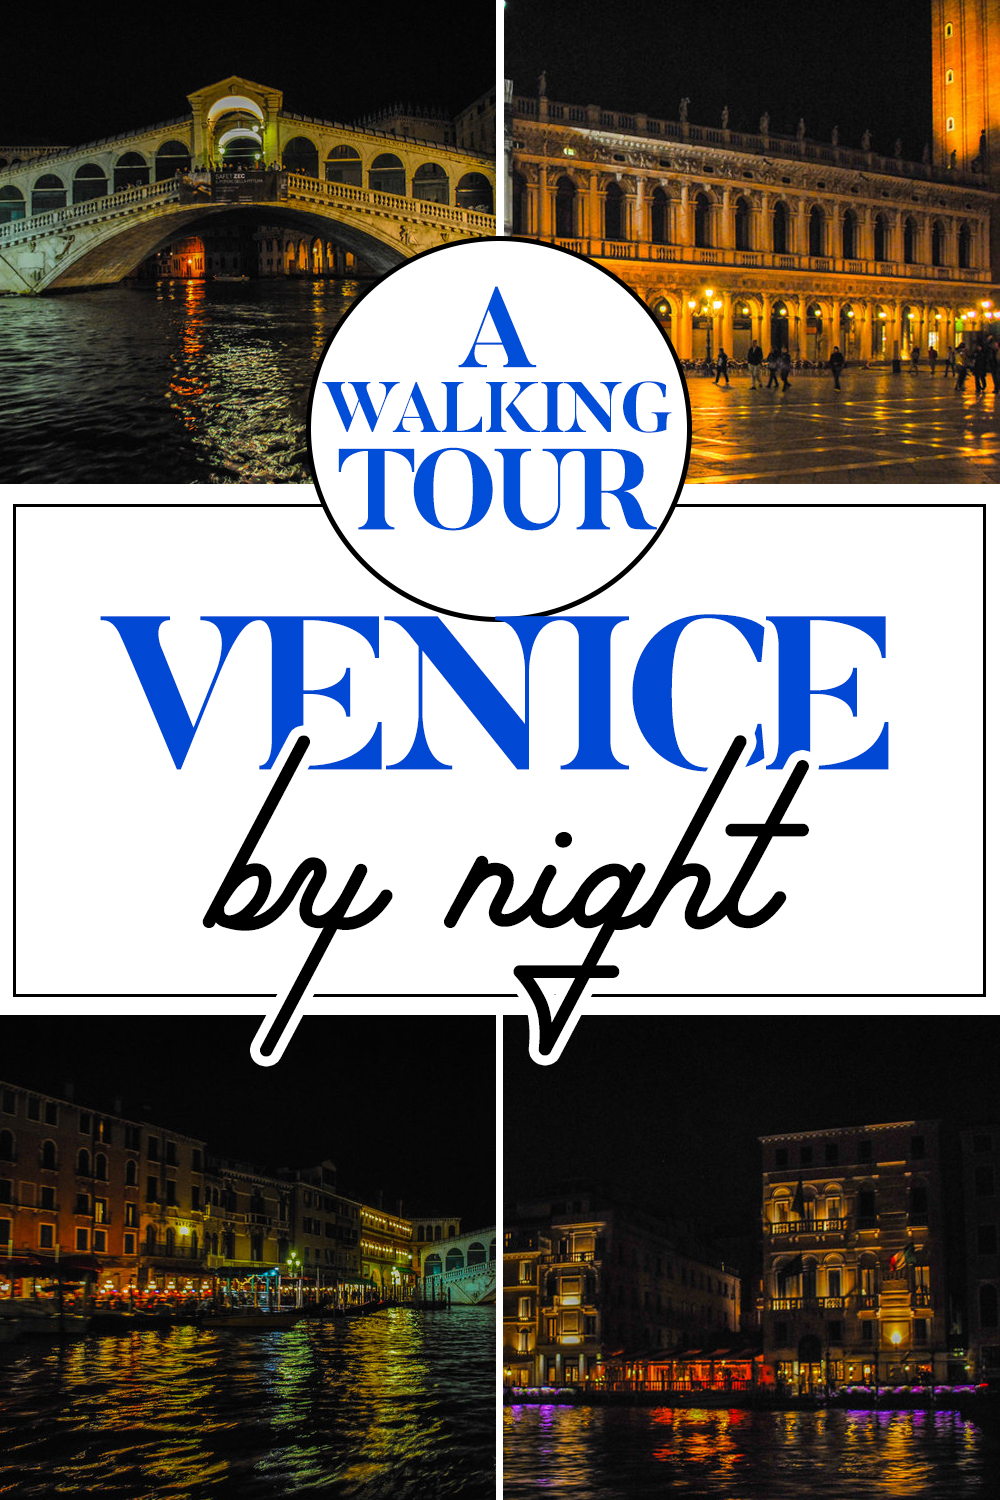 Guided Walking Tour of Venice by Night